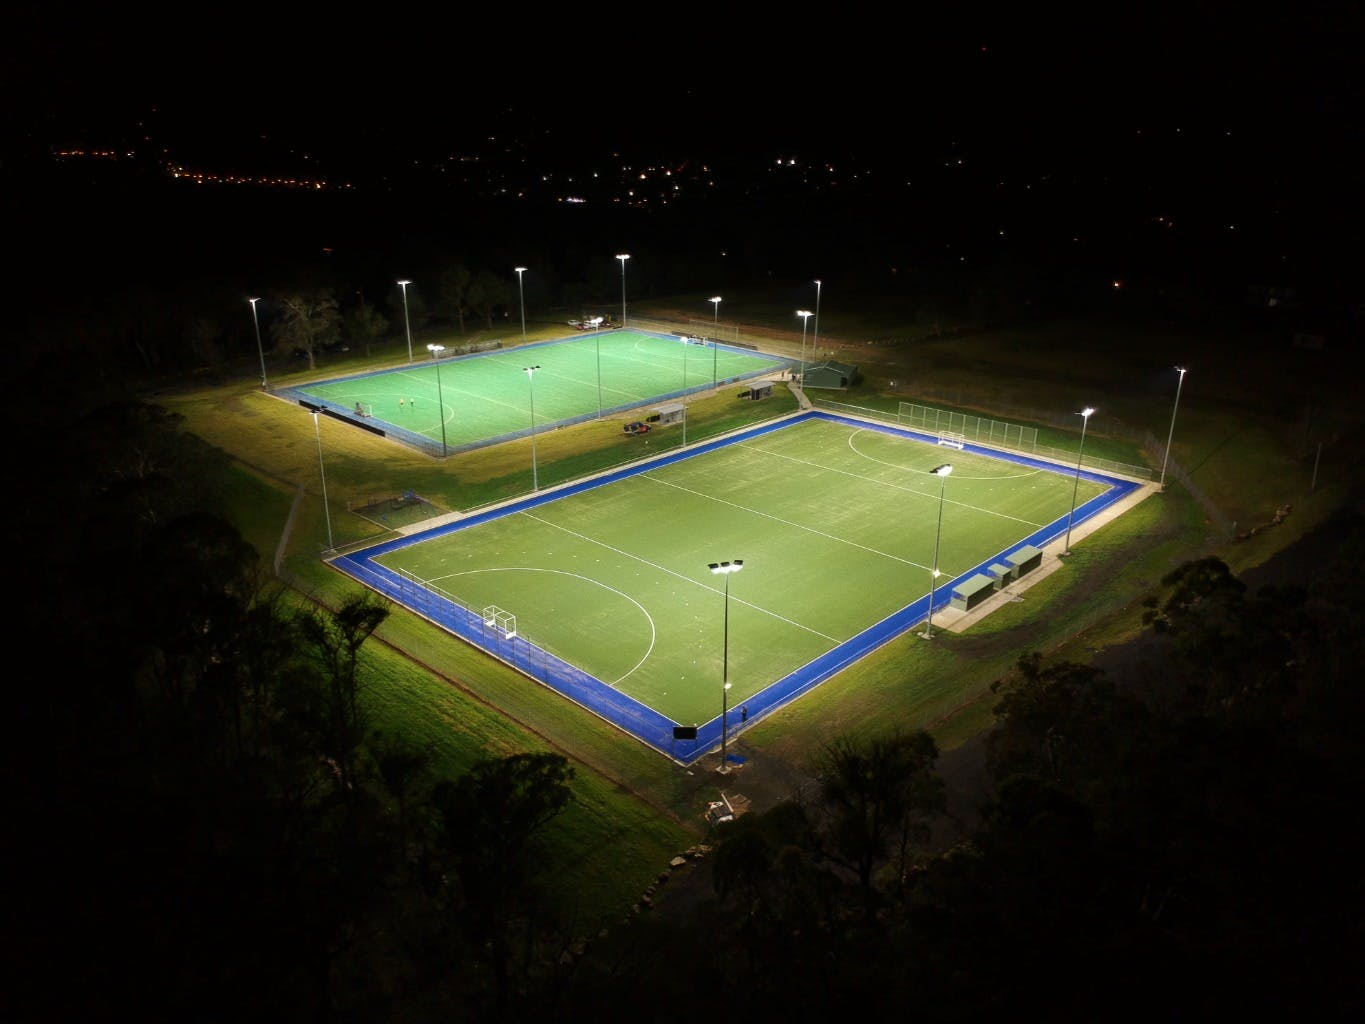 Aerial view of completed 2nd field in foreground